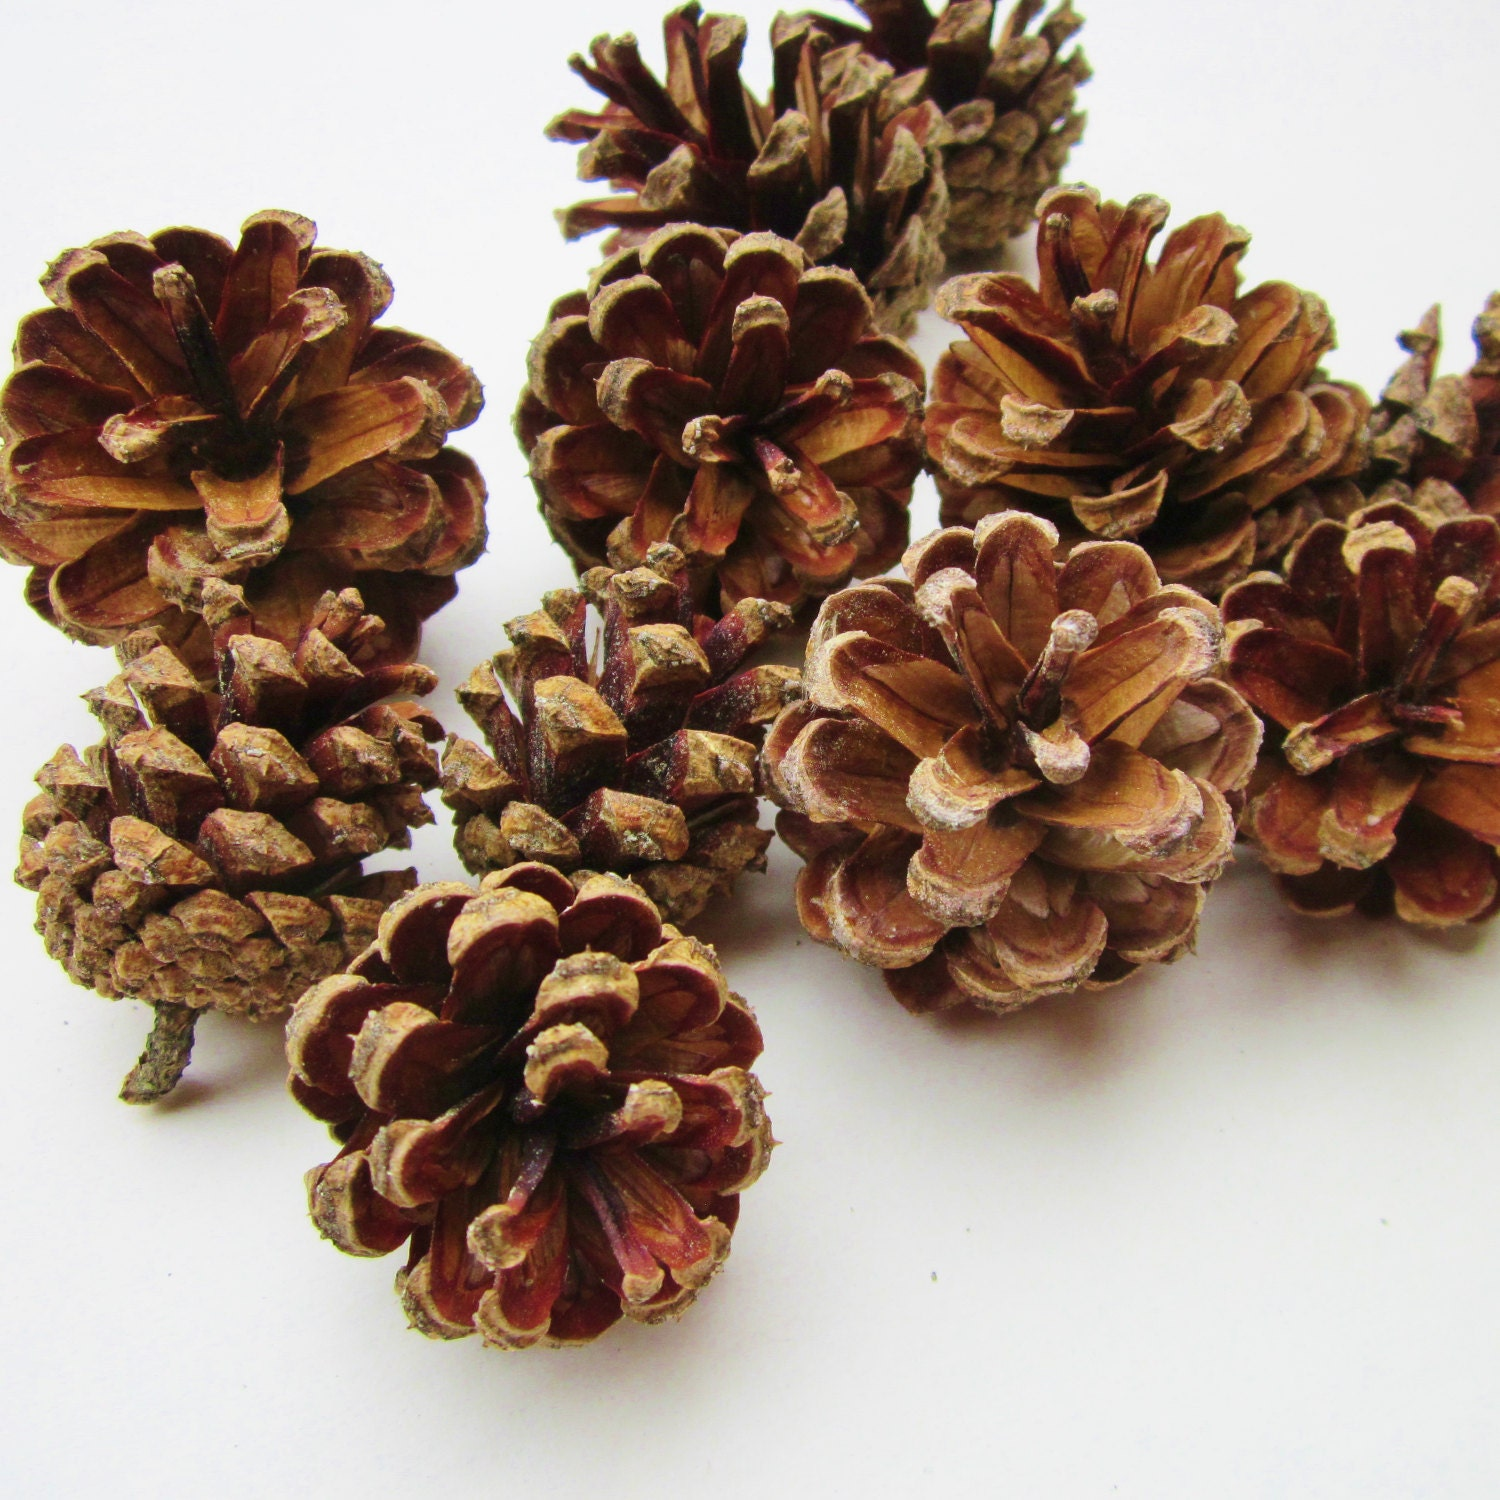 Pine cones nh woodlands small red pine cones nature craft for Small pine cone crafts